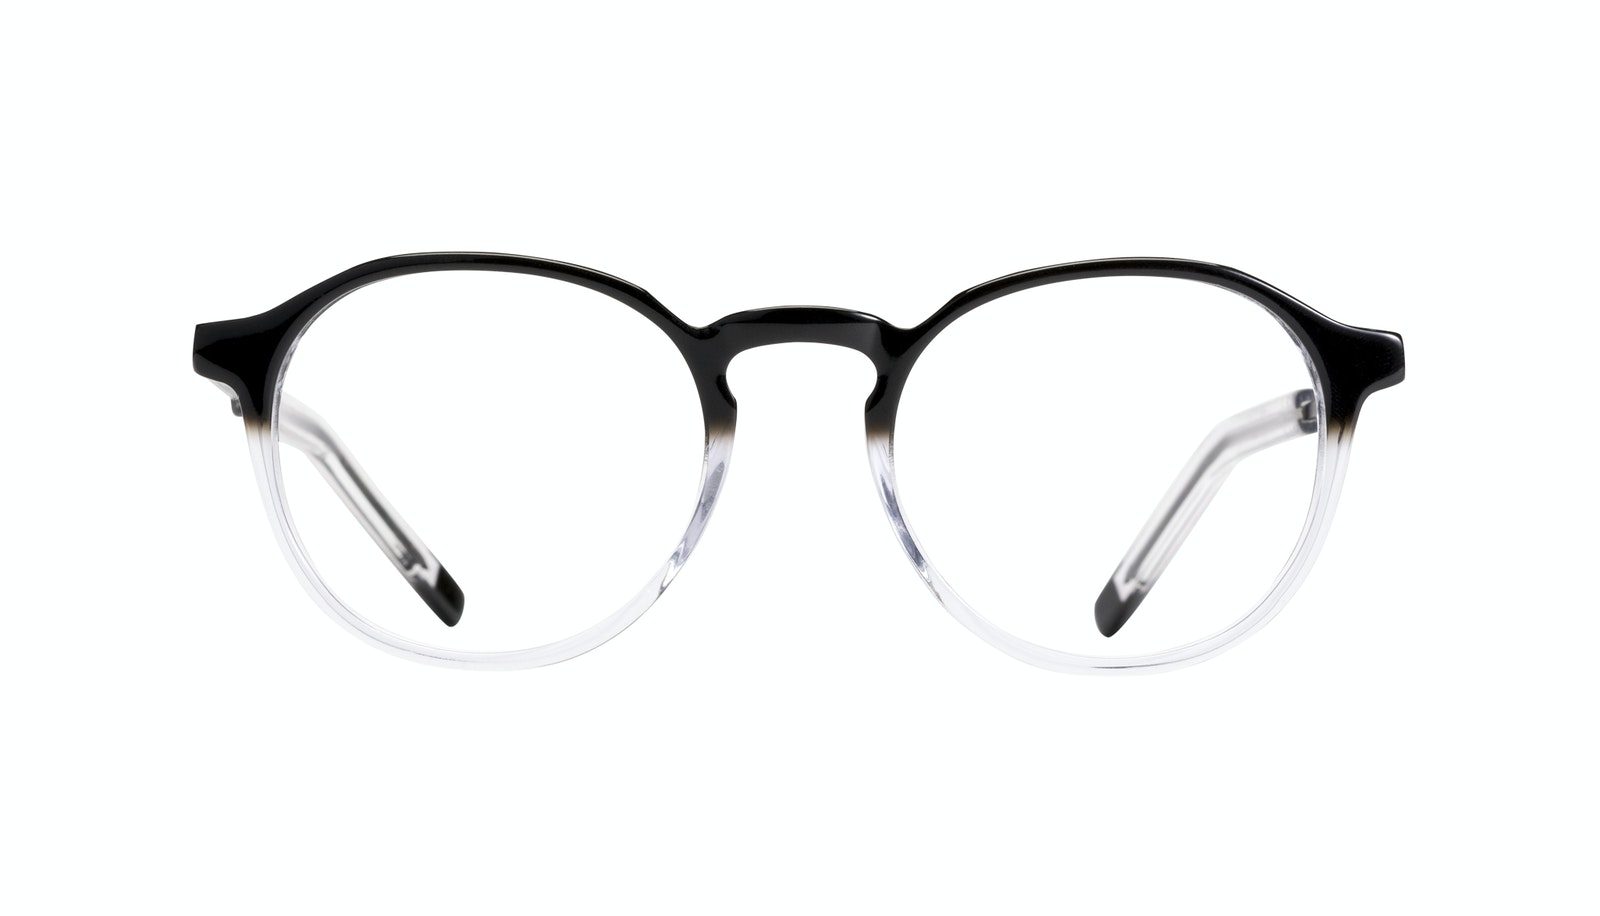 Affordable Fashion Glasses Round Eyeglasses Men Prime S Onyx Clear